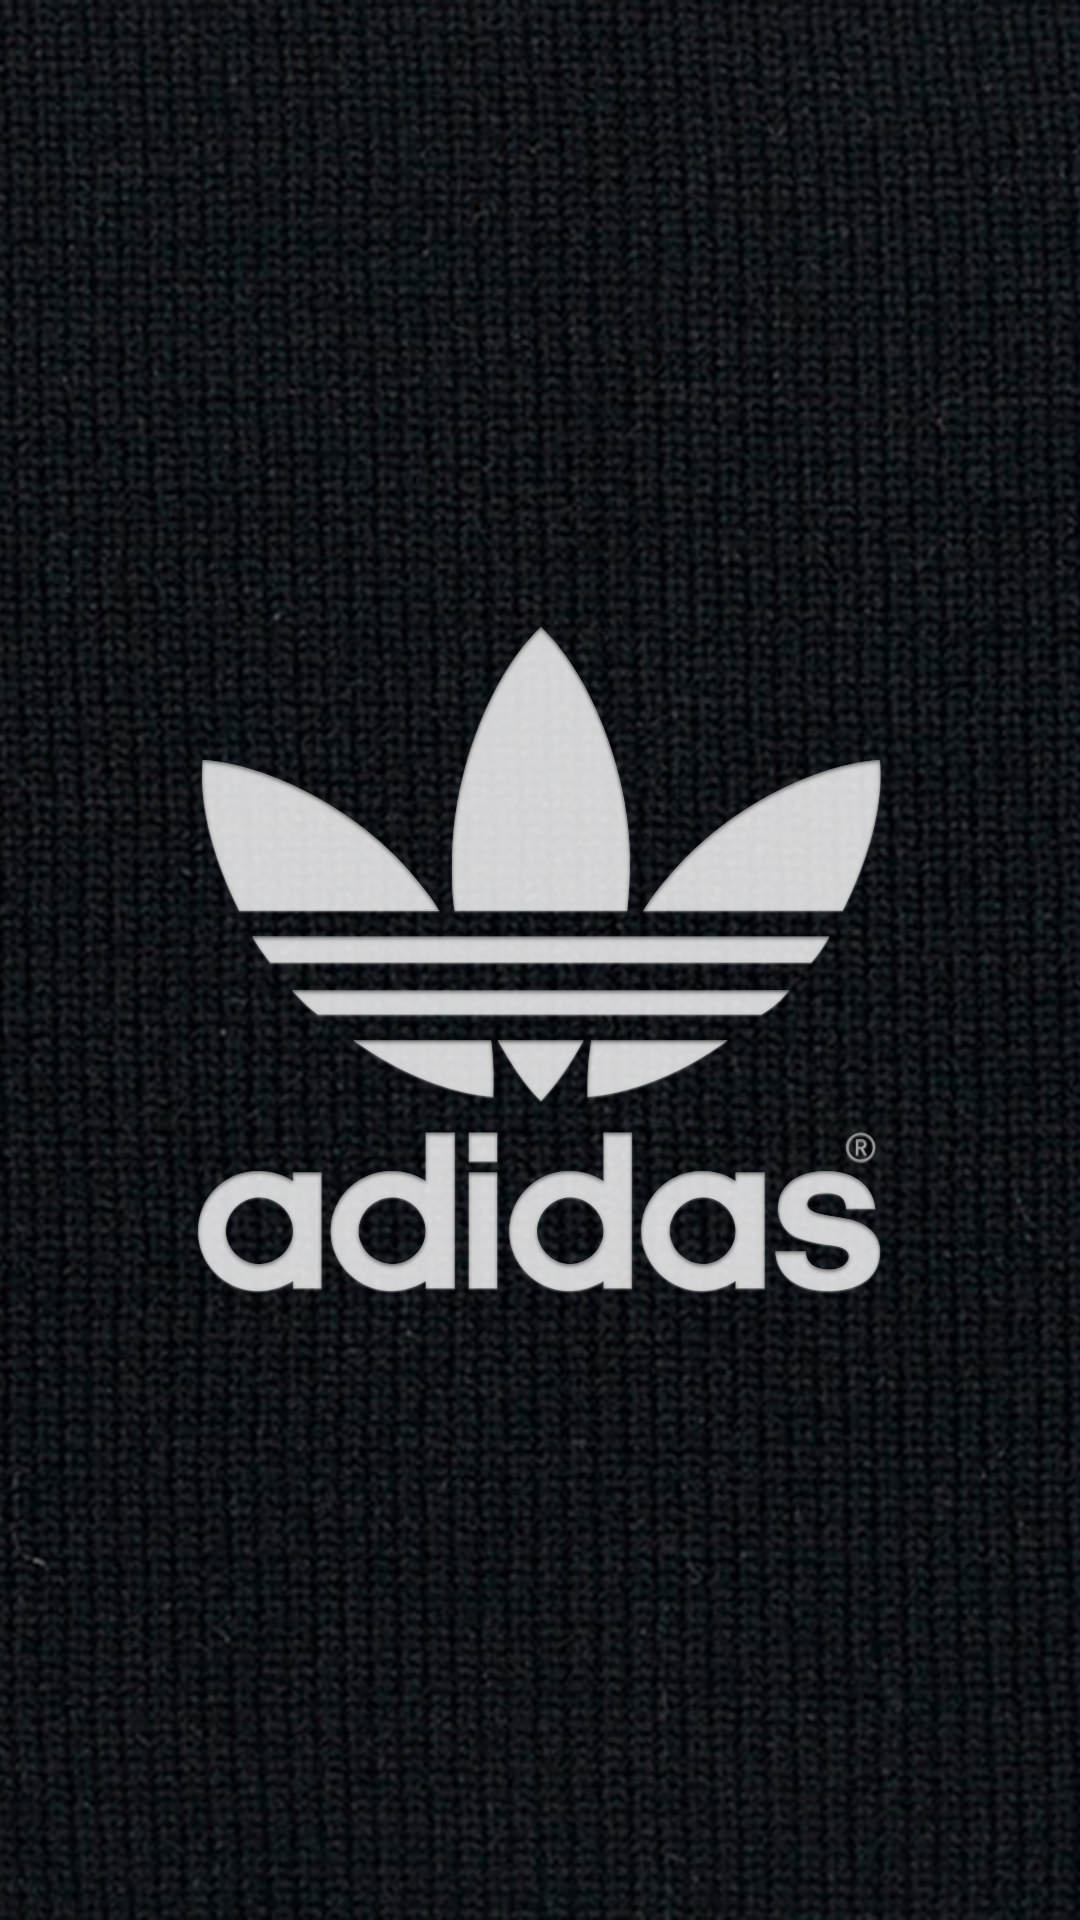 adidas25 - 25 adidas HQ Smartphone Wallpaper Collection